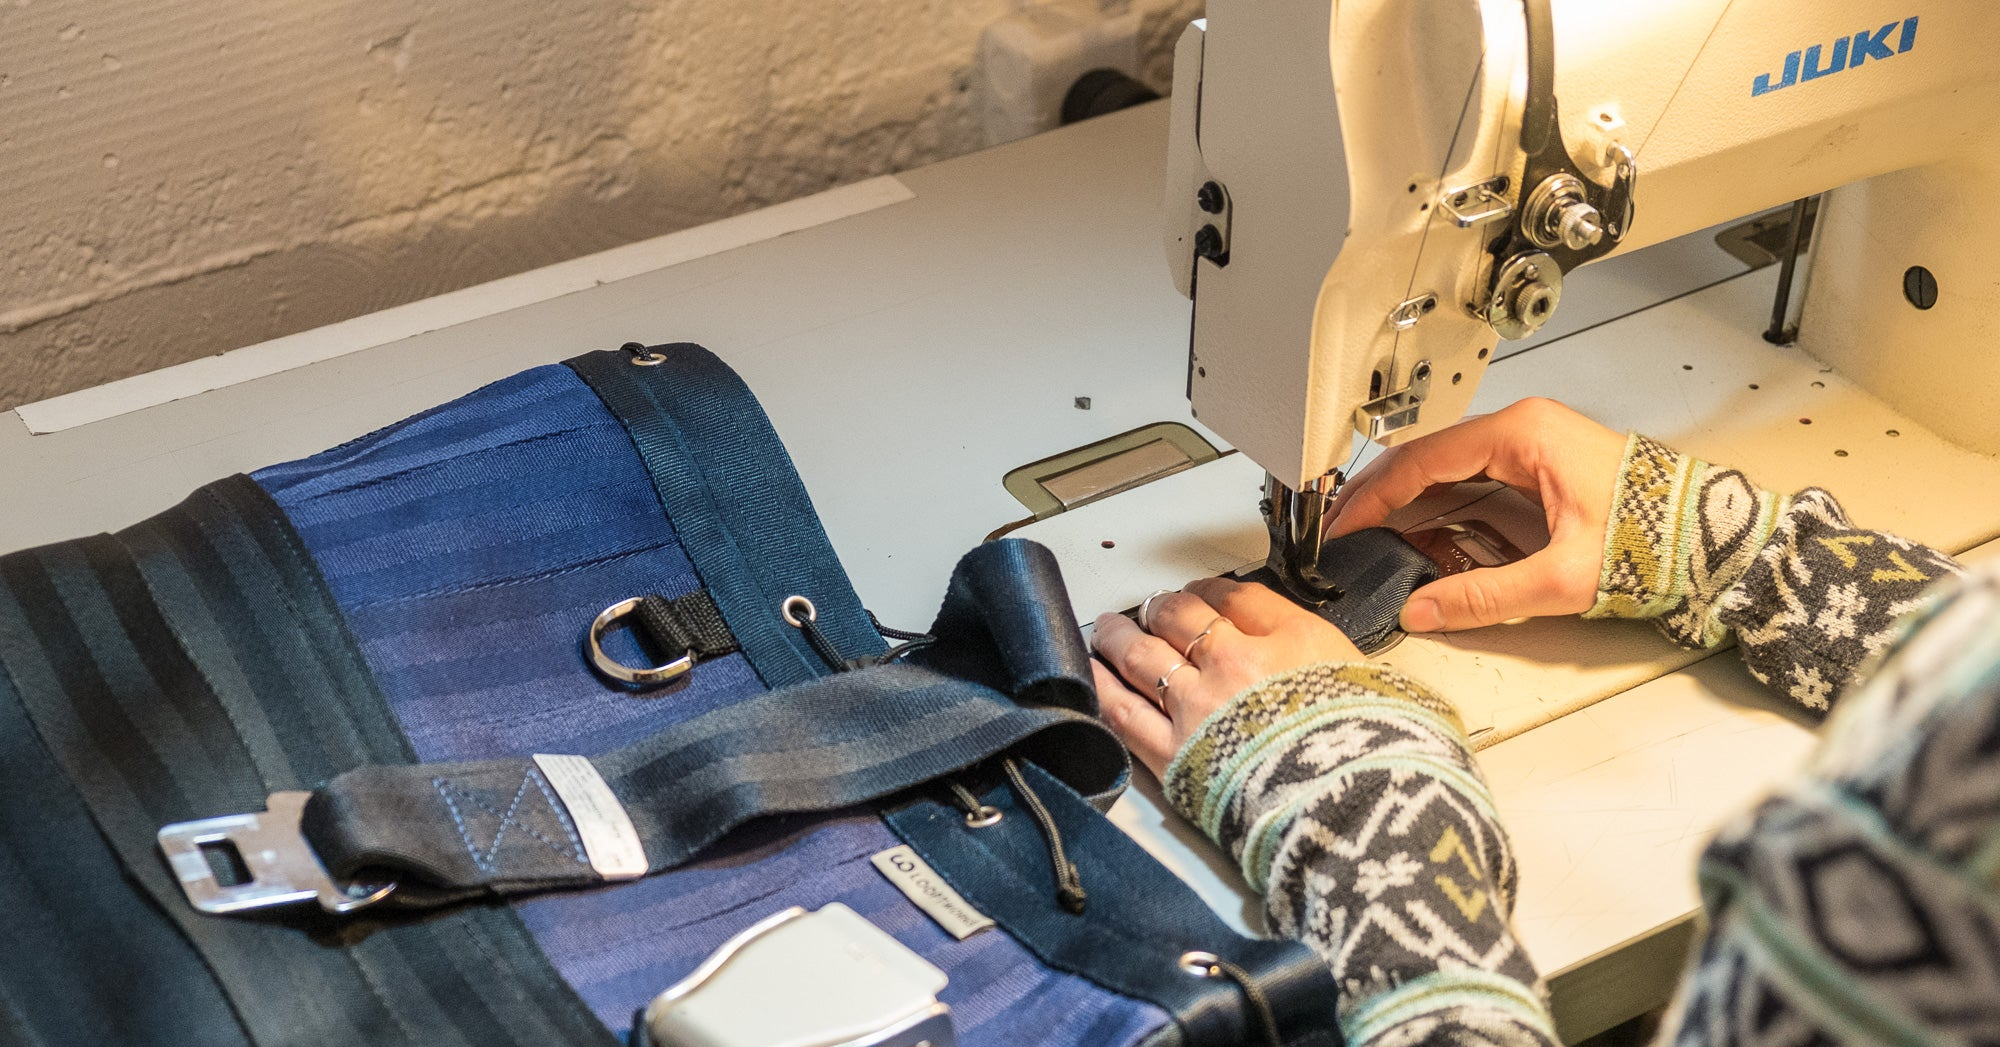 making a bag upcycled from Boeing seat belts